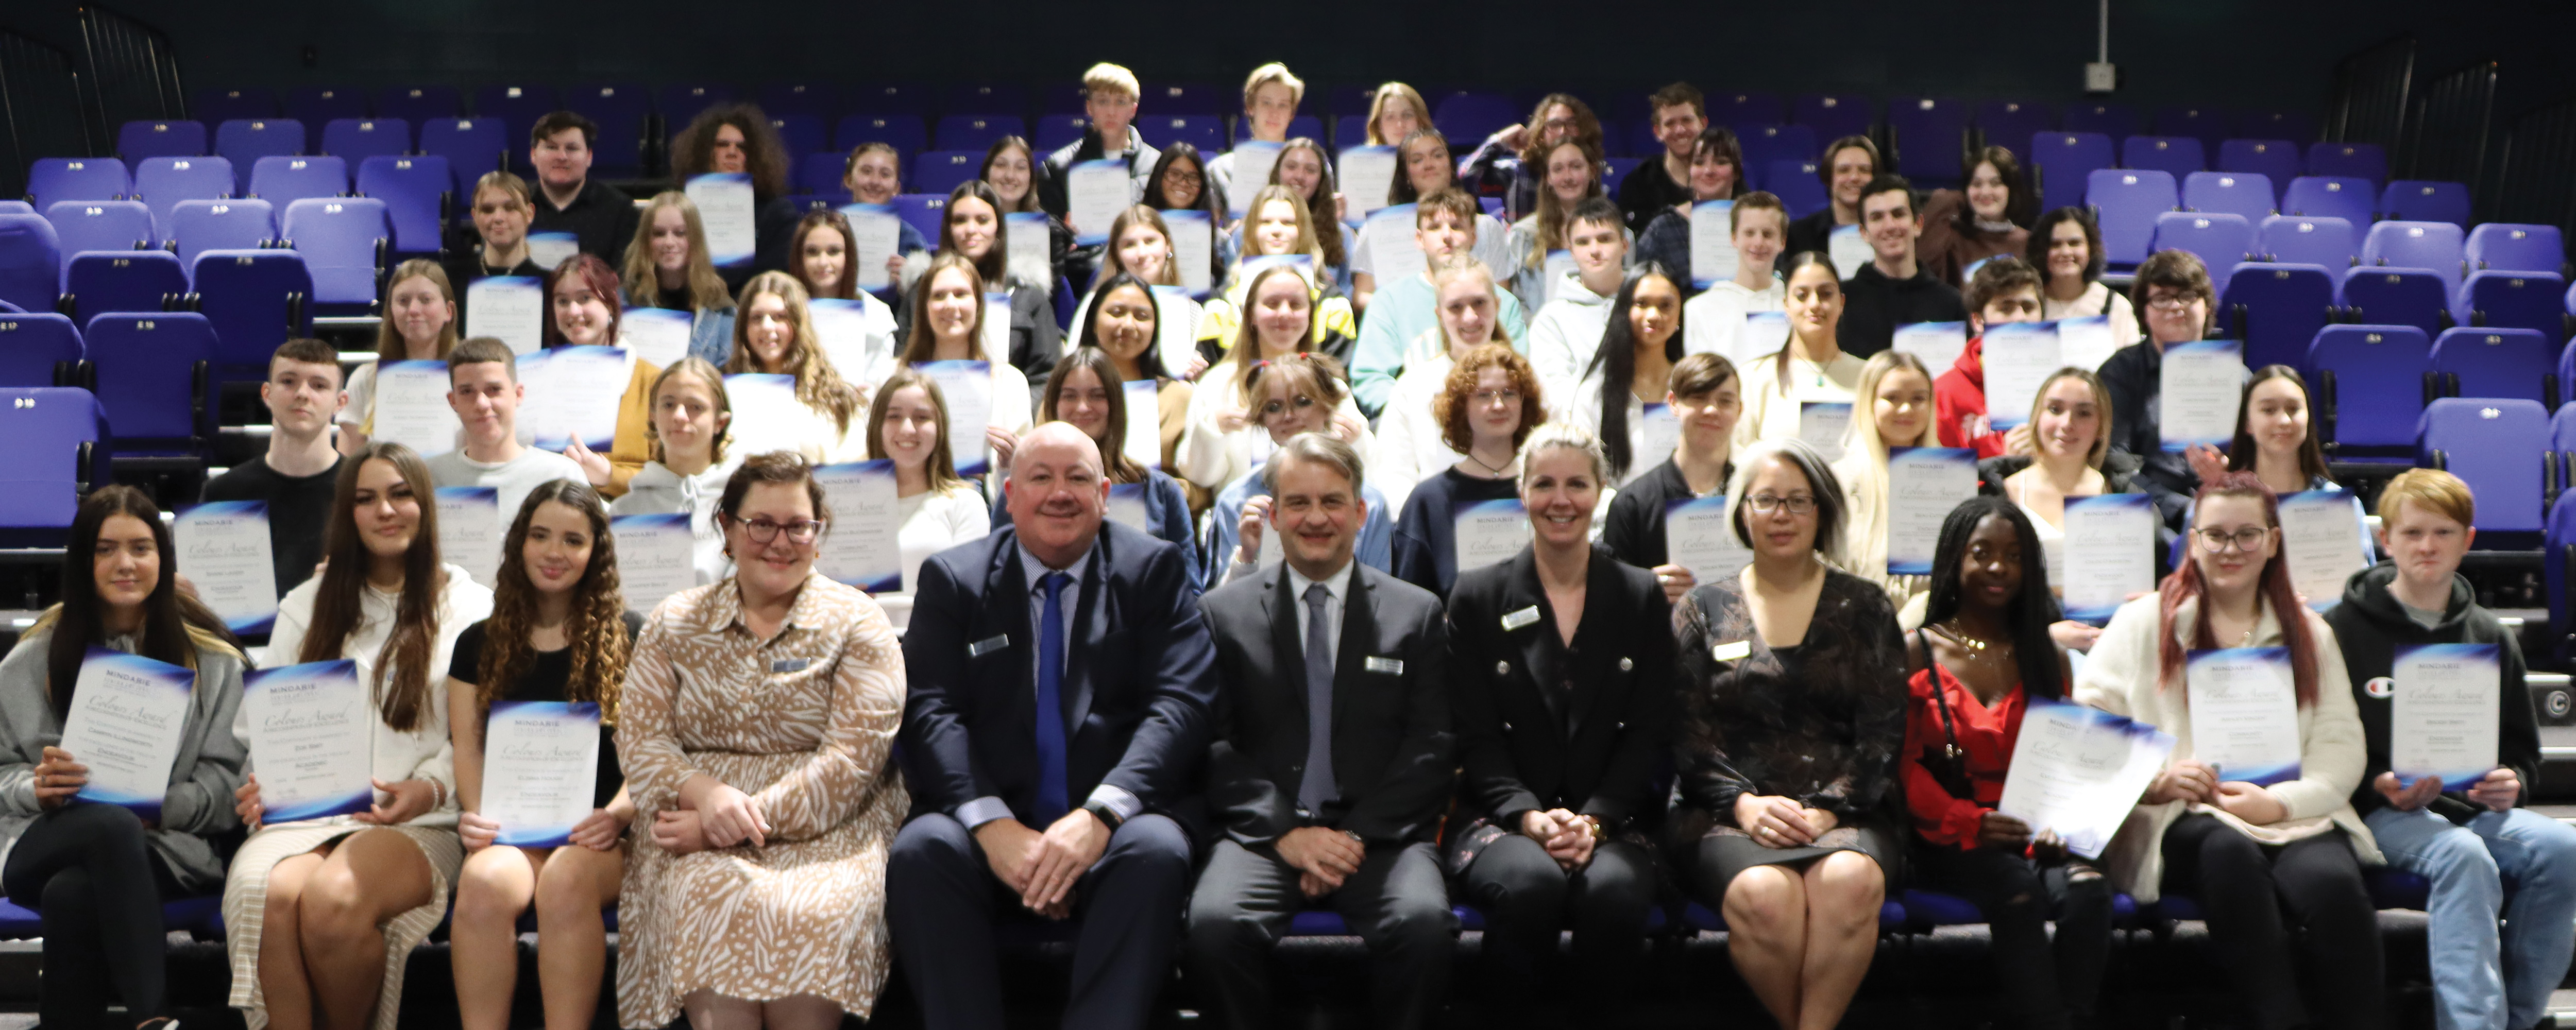 Image for 2021 Semester One - Year 11 Colours Night